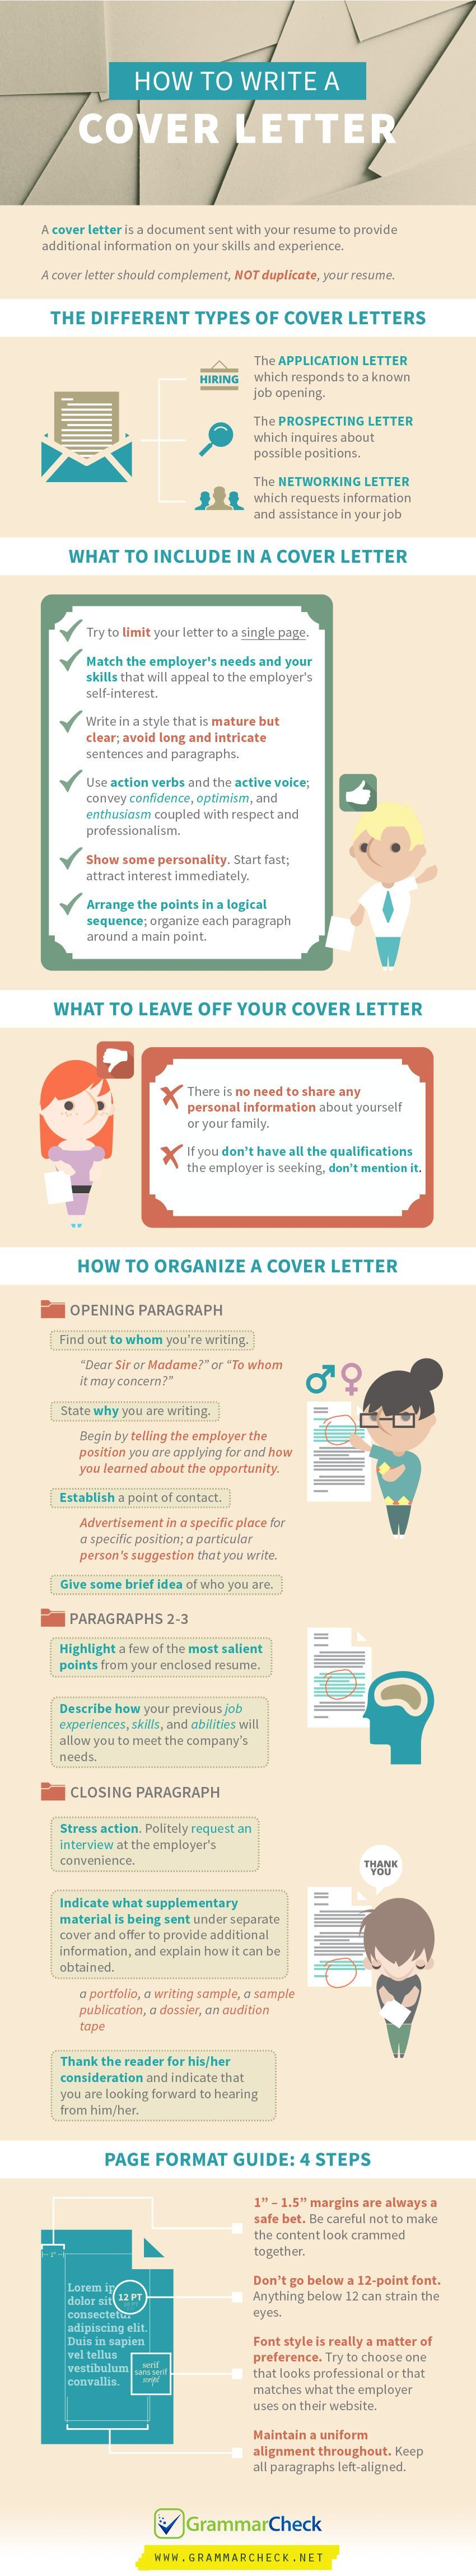 Free Education For All How To An Excellent CoverLetter  Source